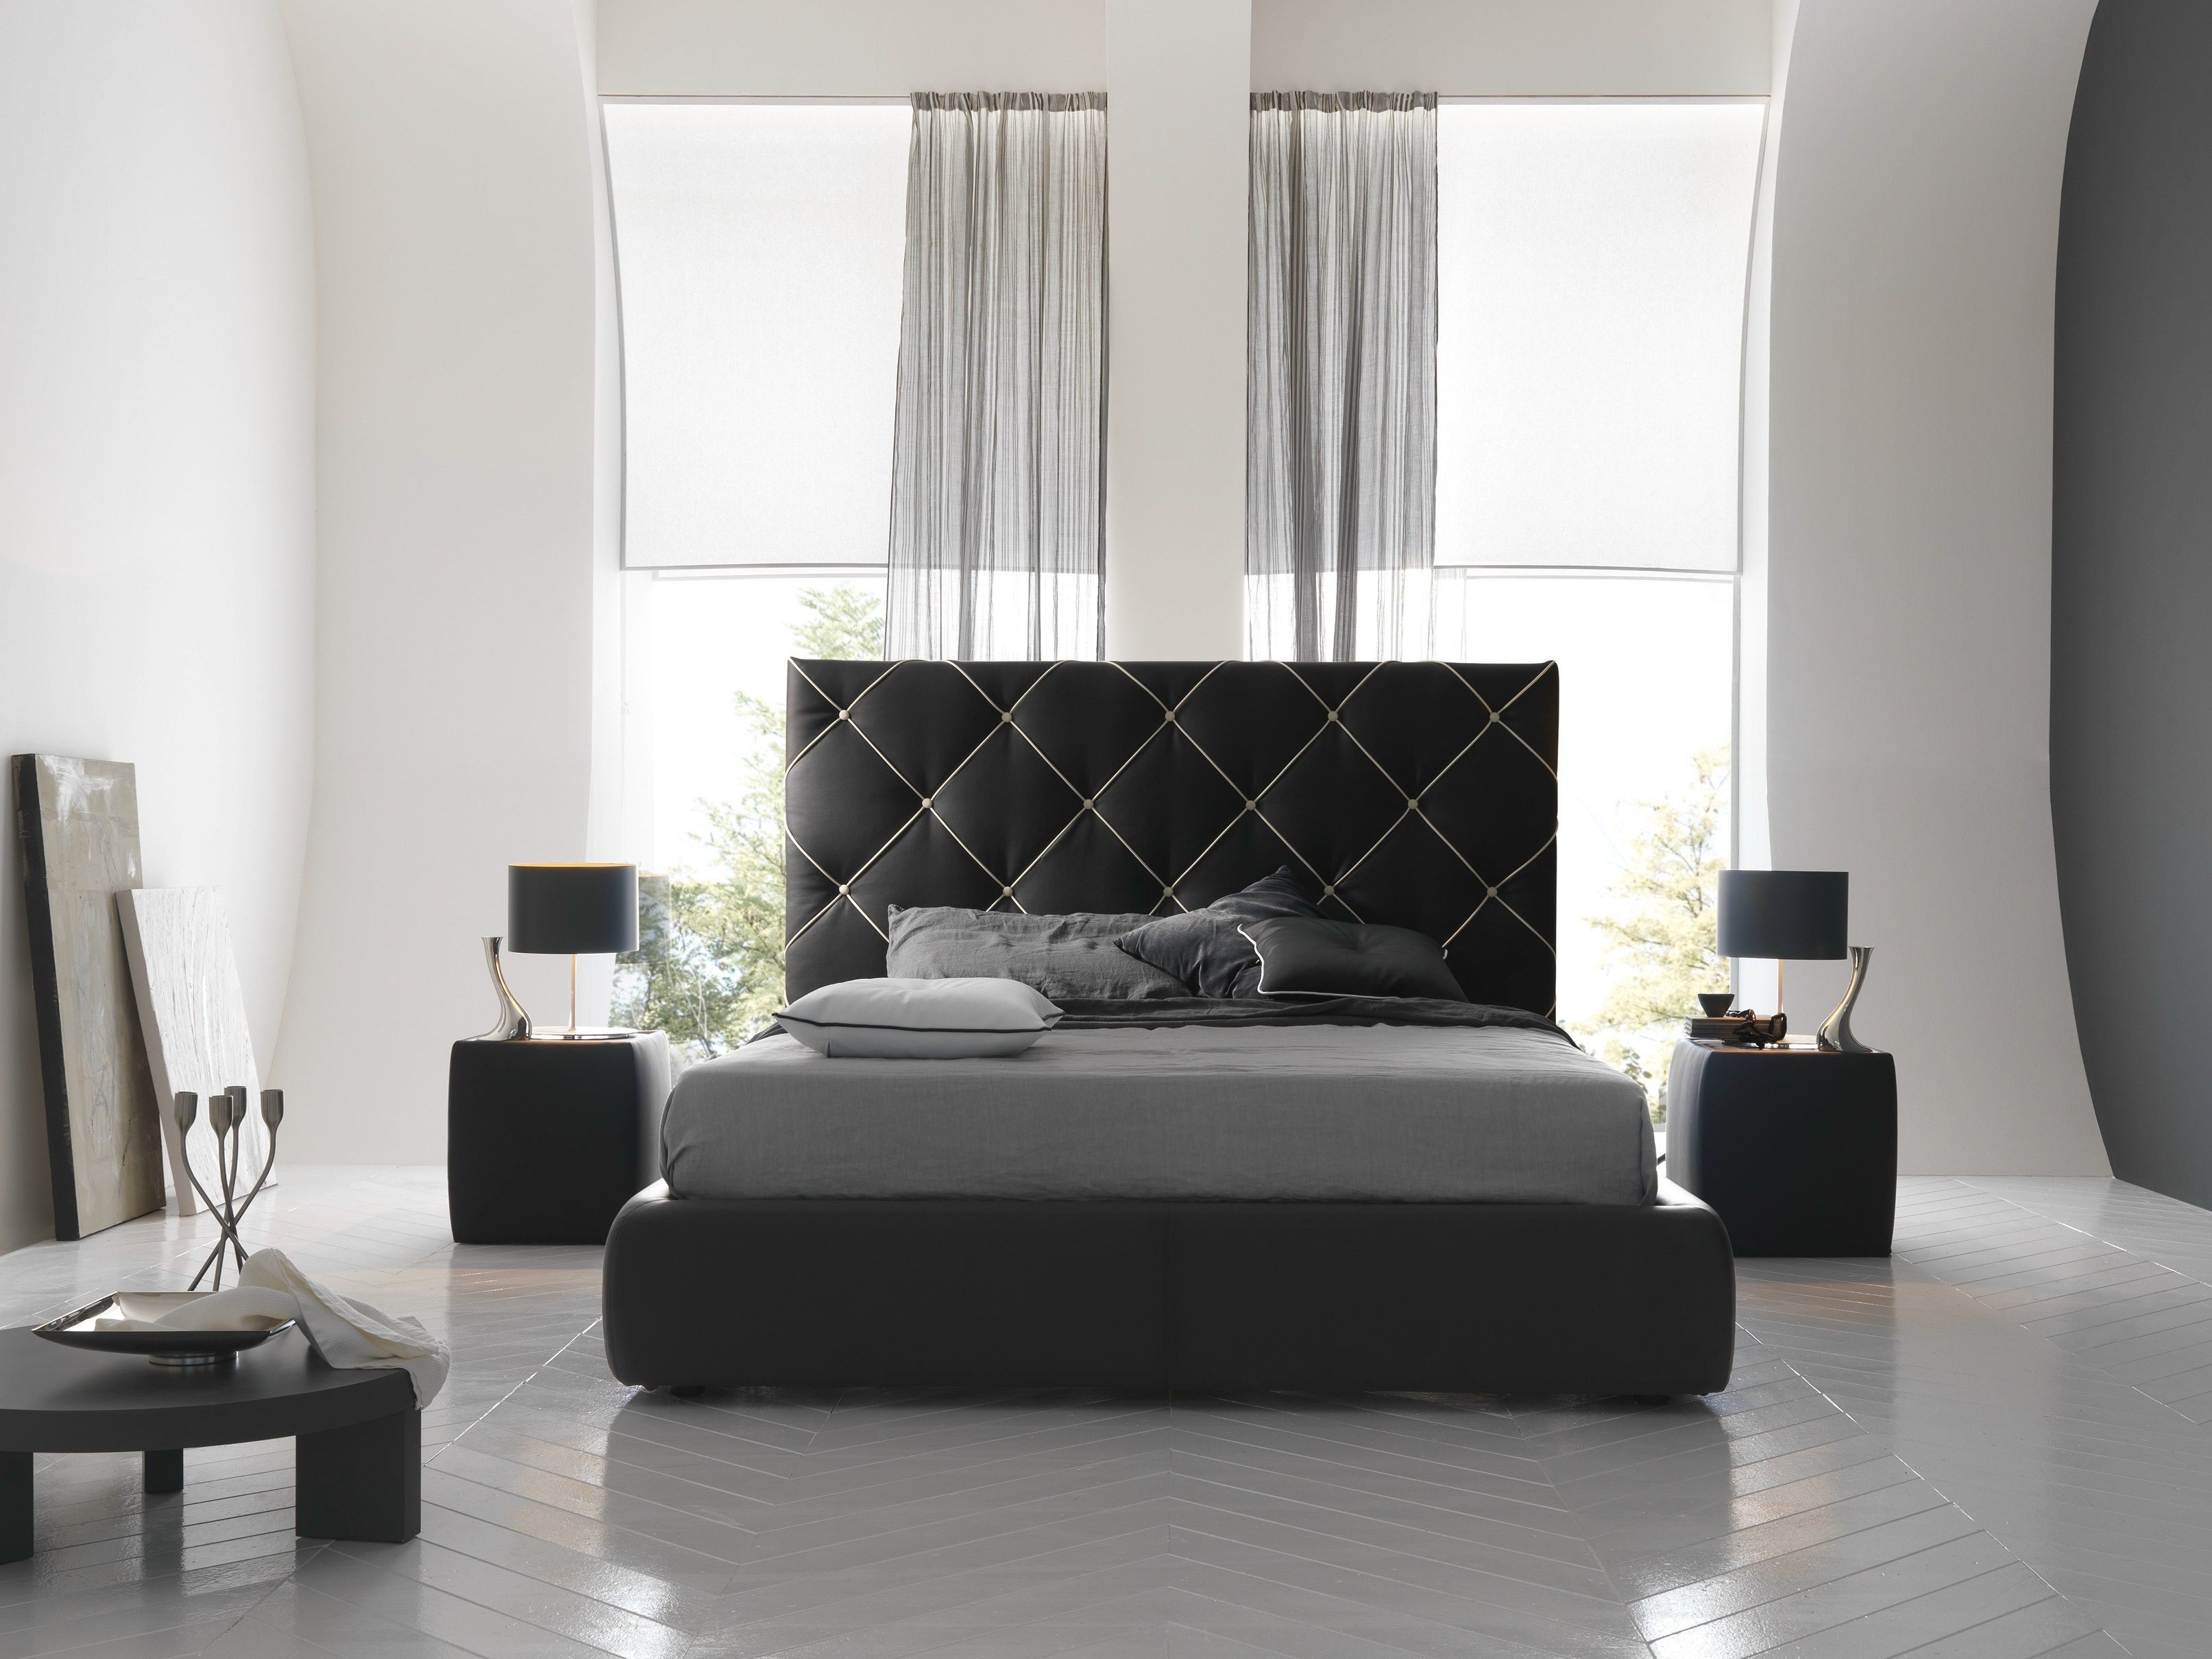 Double bed with tufted headboard DUBAI by Bolzan Letti